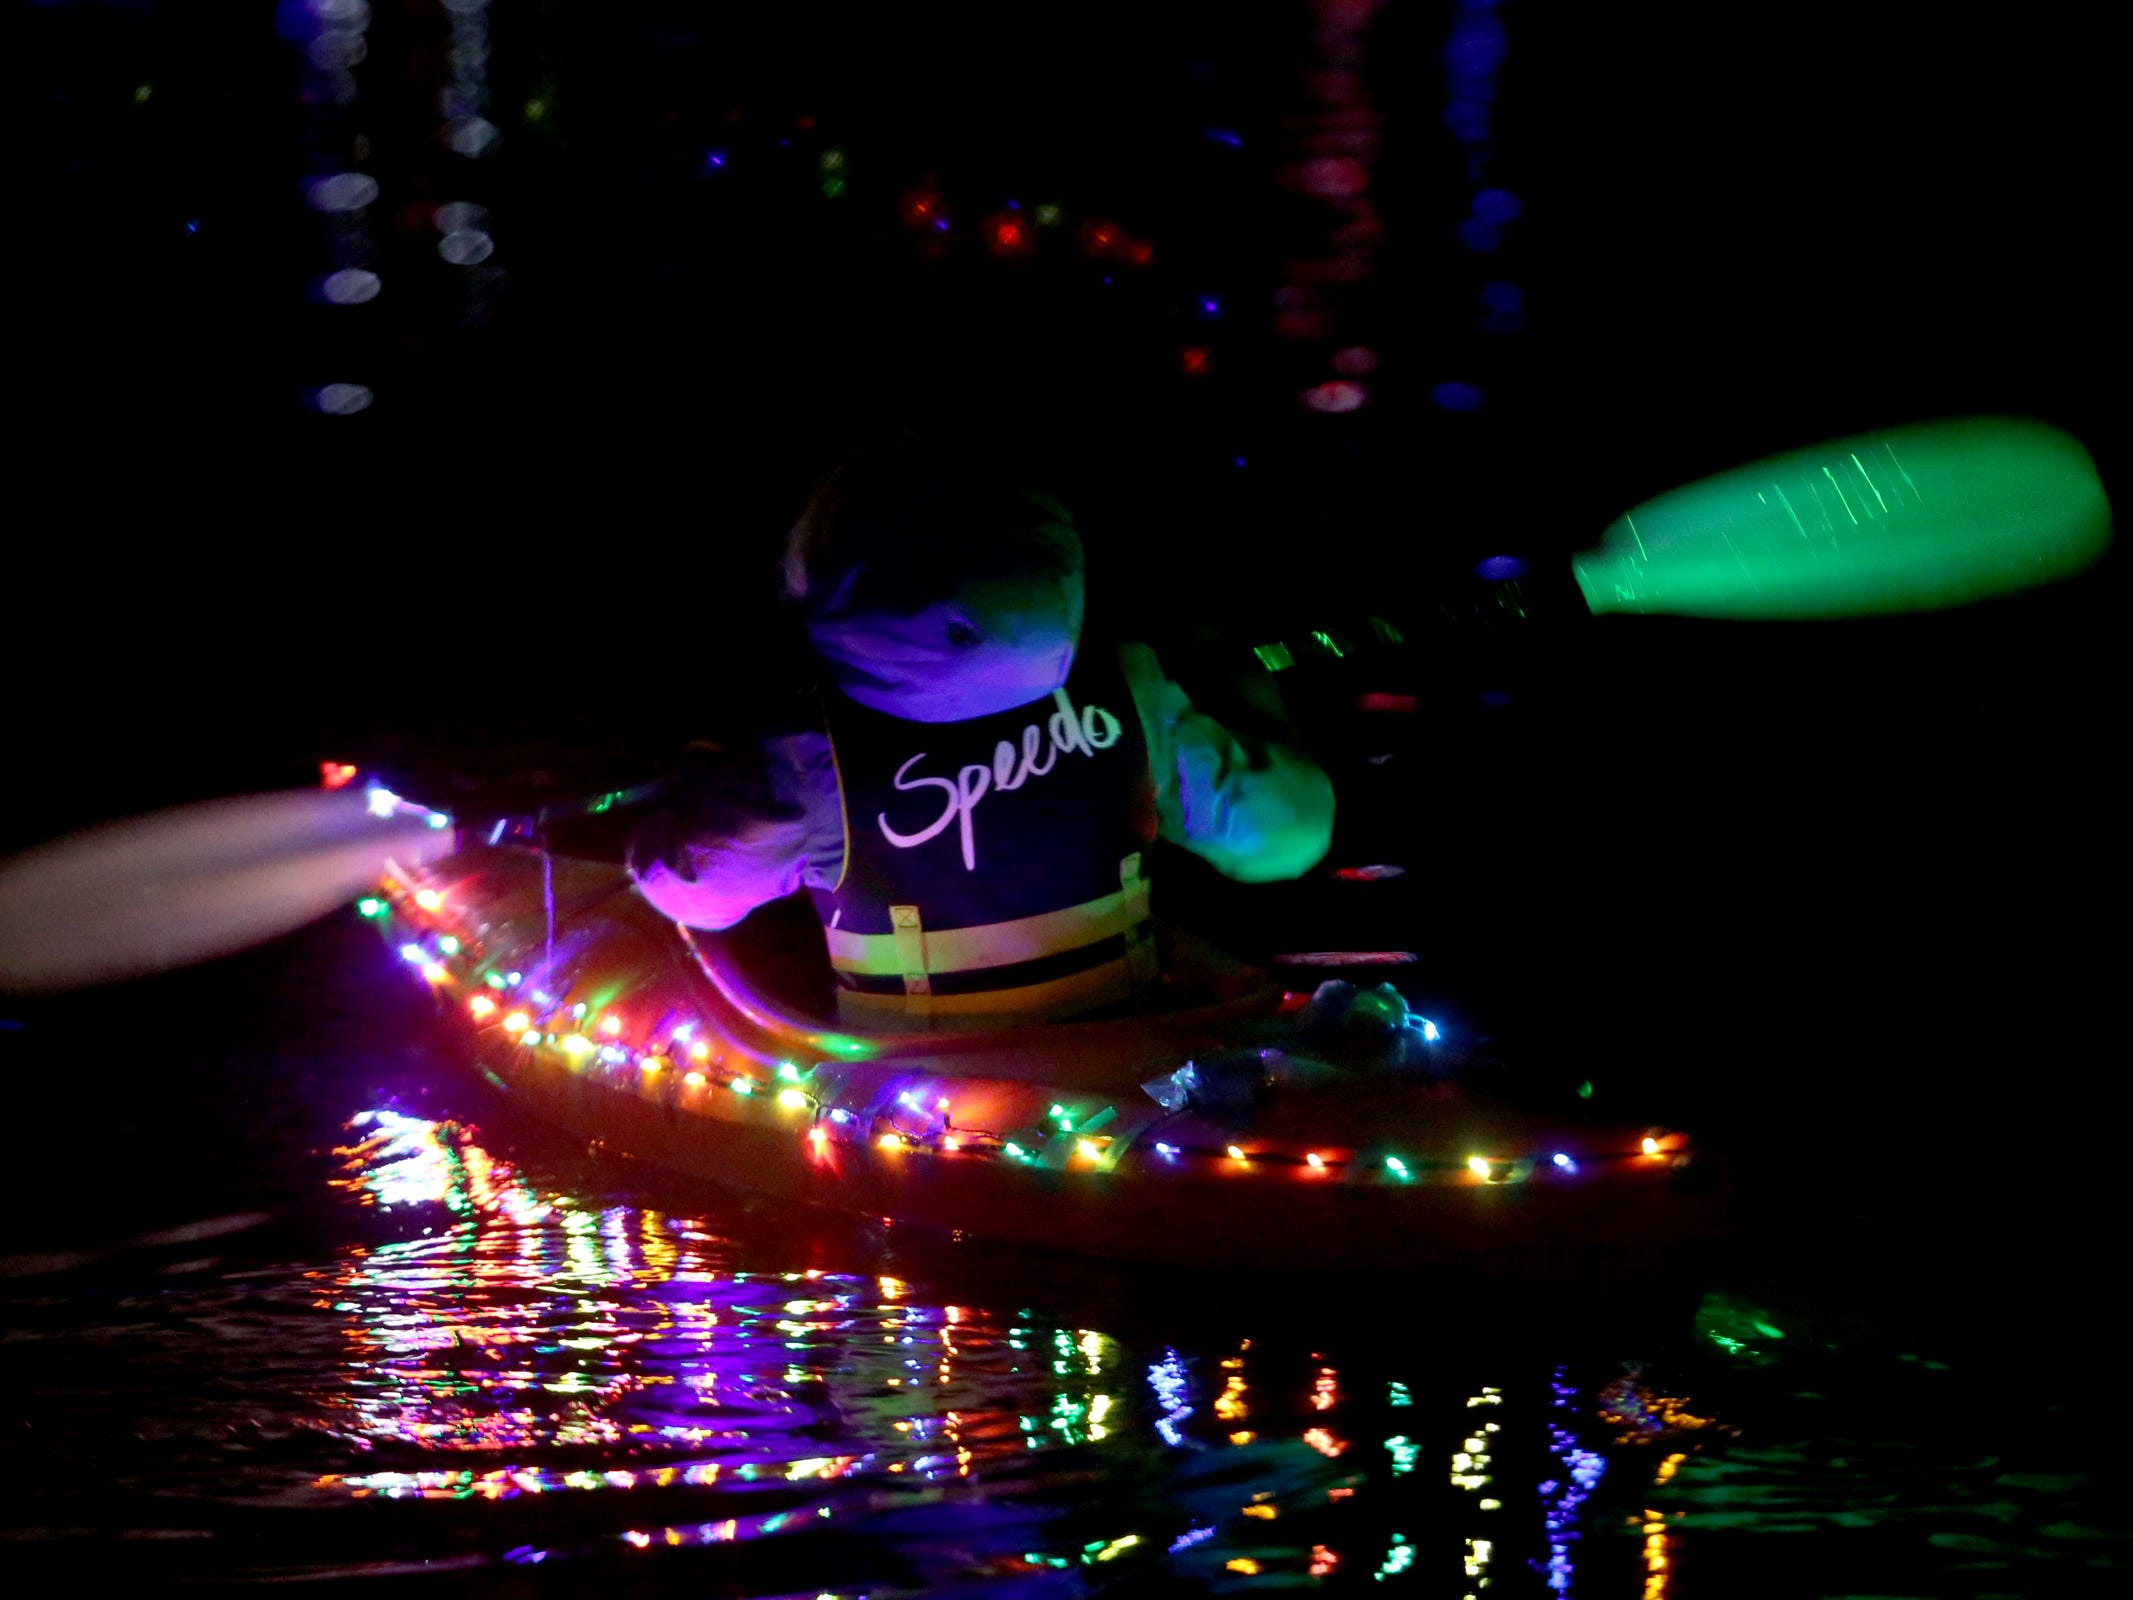 A girl kayaks during the 14th annual Winter Solstice Illuminata Regatta on the Willamette River at Riverfront Park in Salem on Saturday, Dec. 15, 2018.